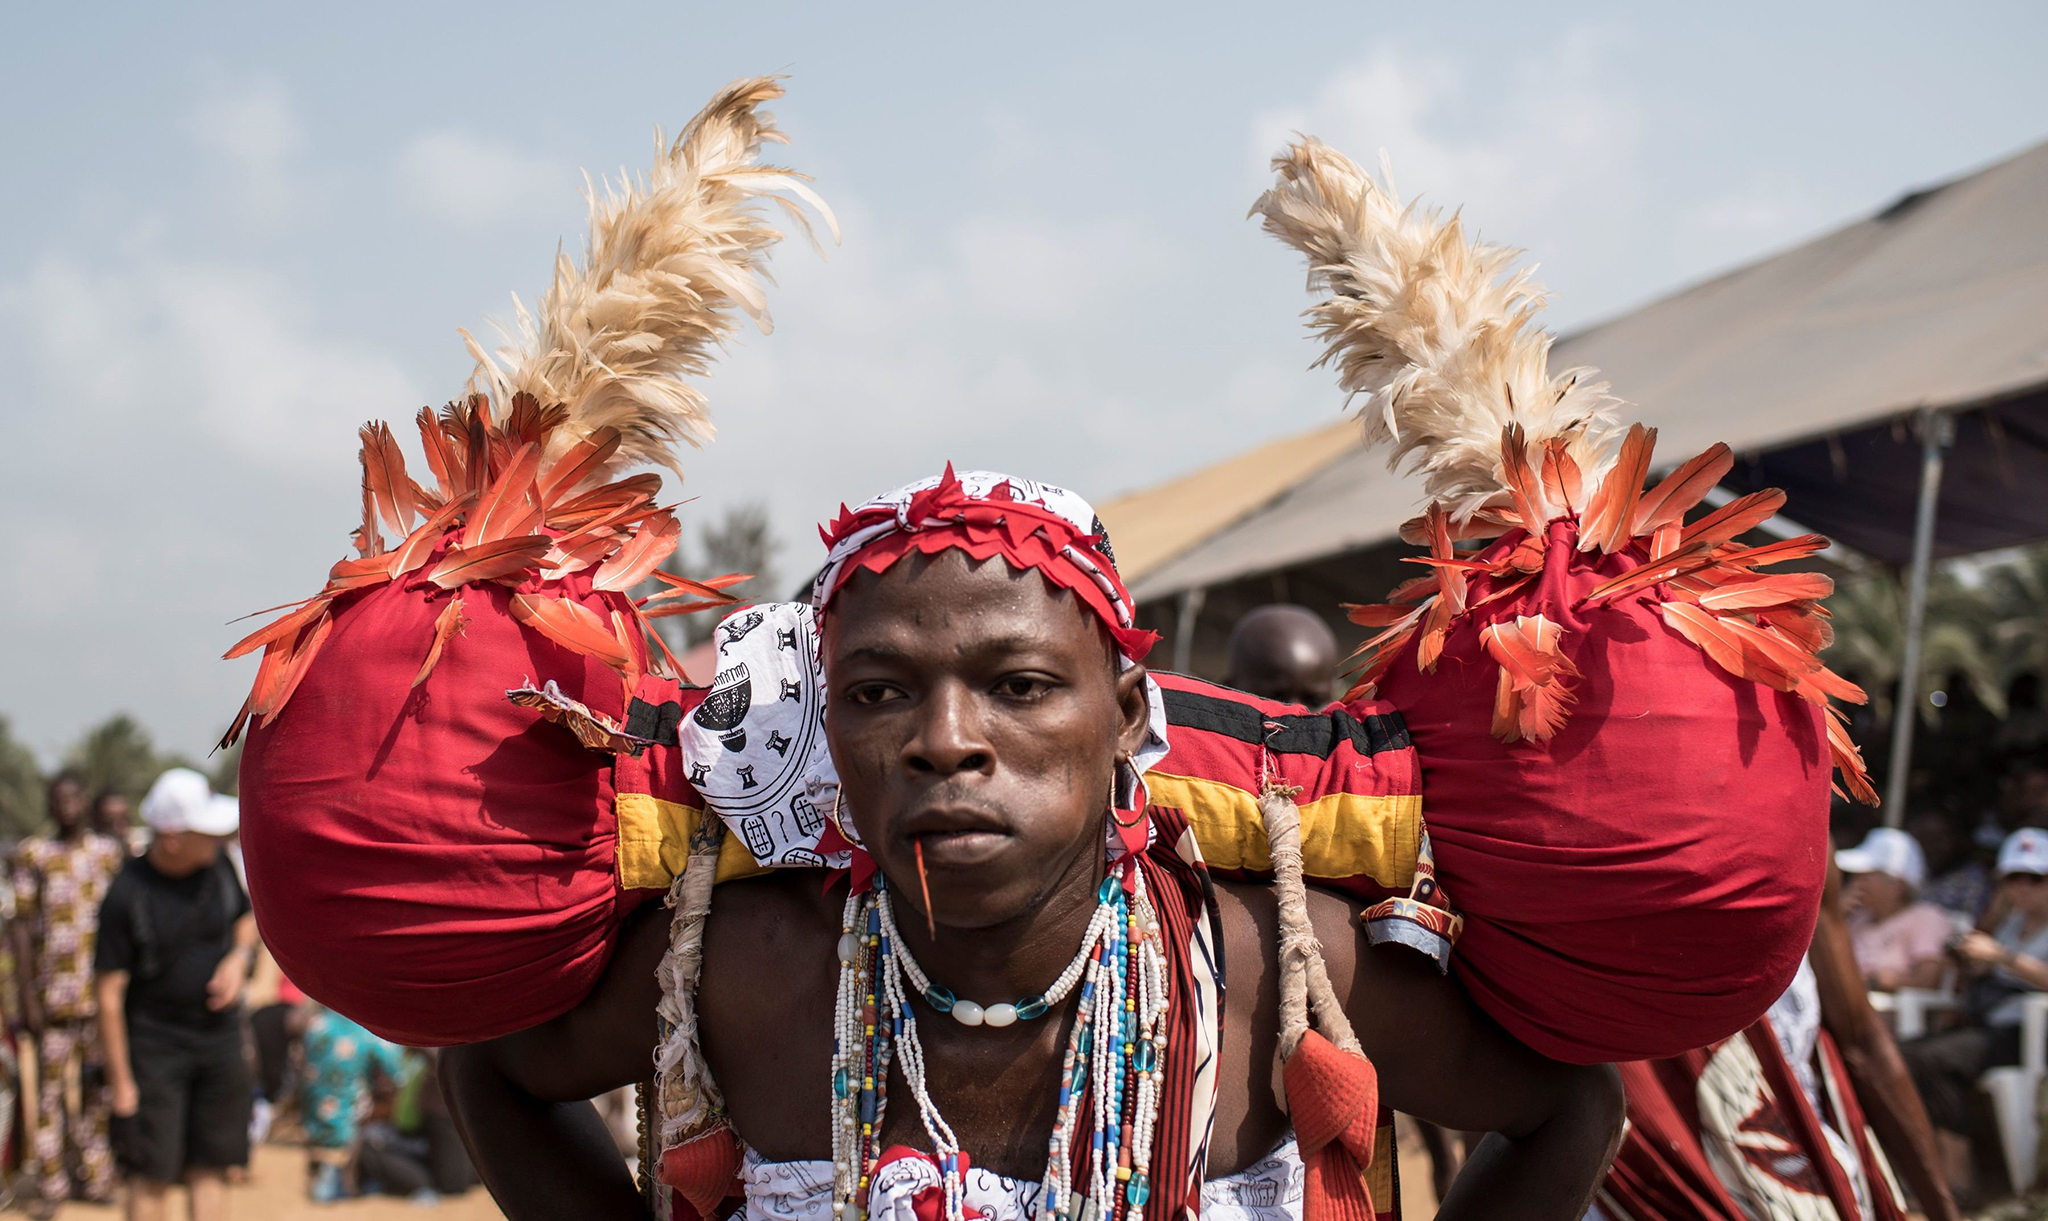 A Voodoo devotee performs on a beach at the annual Voodoo Festival on January 10, 2017 in Ouidah.  Officially declared a religion in Benin in 1996, Voodoo and the Voodoo festival attracts thousands of devotees and tourists for a day filled with ritual dances and gin drinking. Benins voodoo festival is held every year and is the West African countrys most vibrant and colourful event. / AFP PHOTO / STEFAN HEUNISSTEFAN HEUNIS/AFP/Getty Images